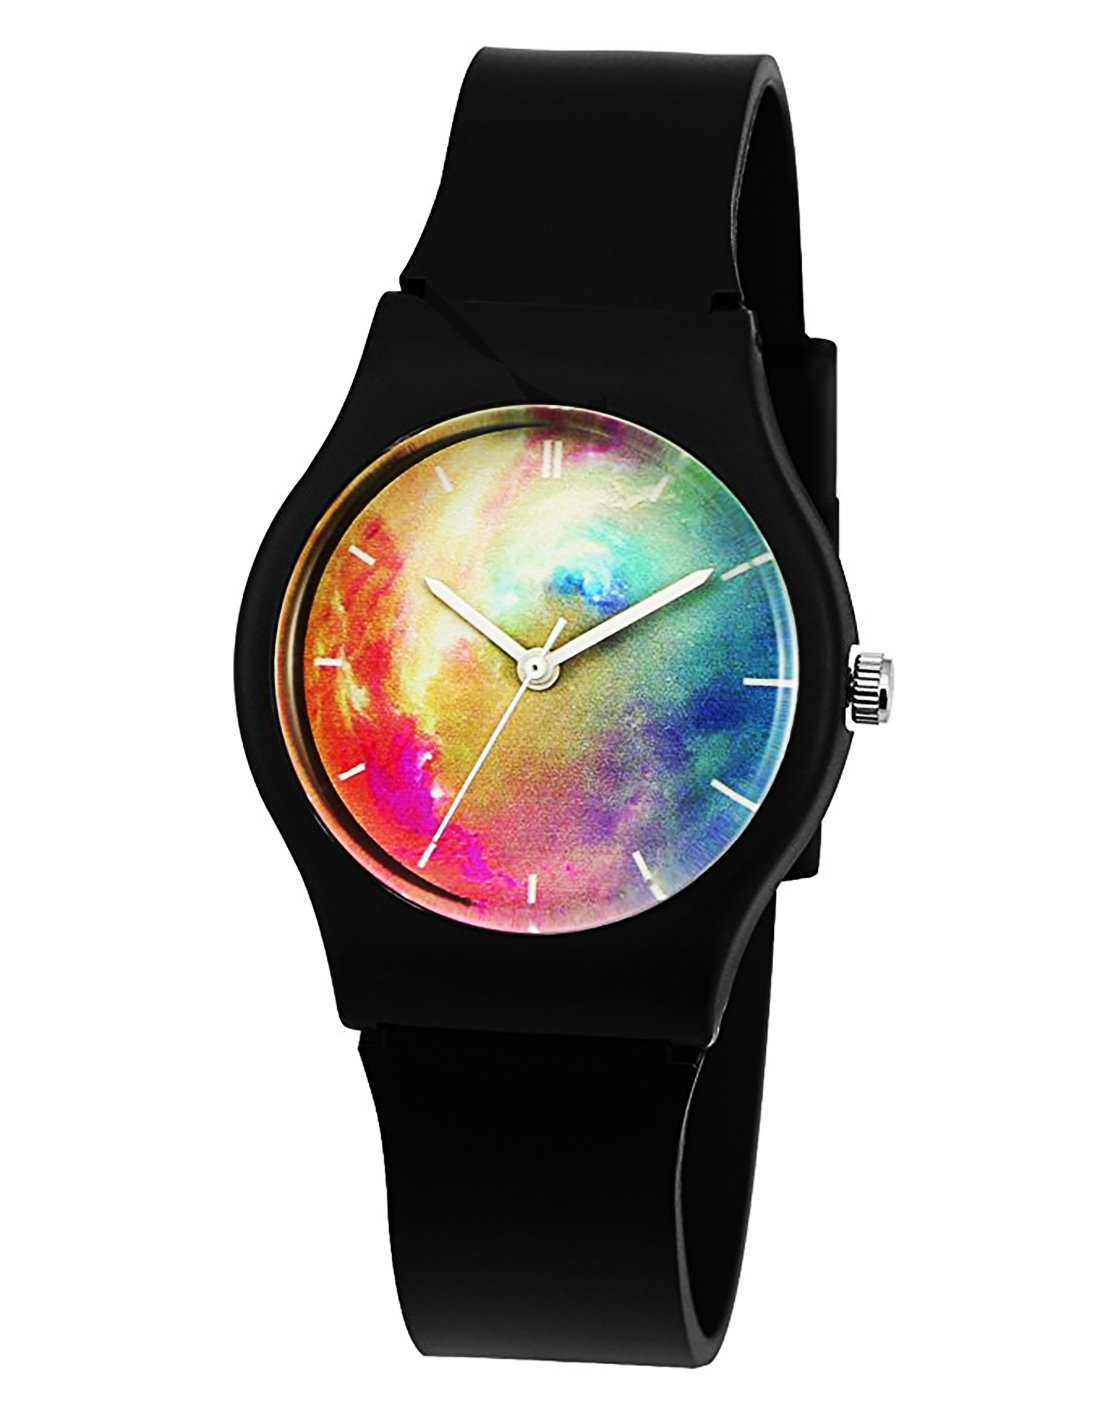 Kids Boys Girls Watches,Resin Super Soft Band Student Age 11-15 7-10 Wristwatches for Teenagers Young Girls Boys Nebula Starry(Black)